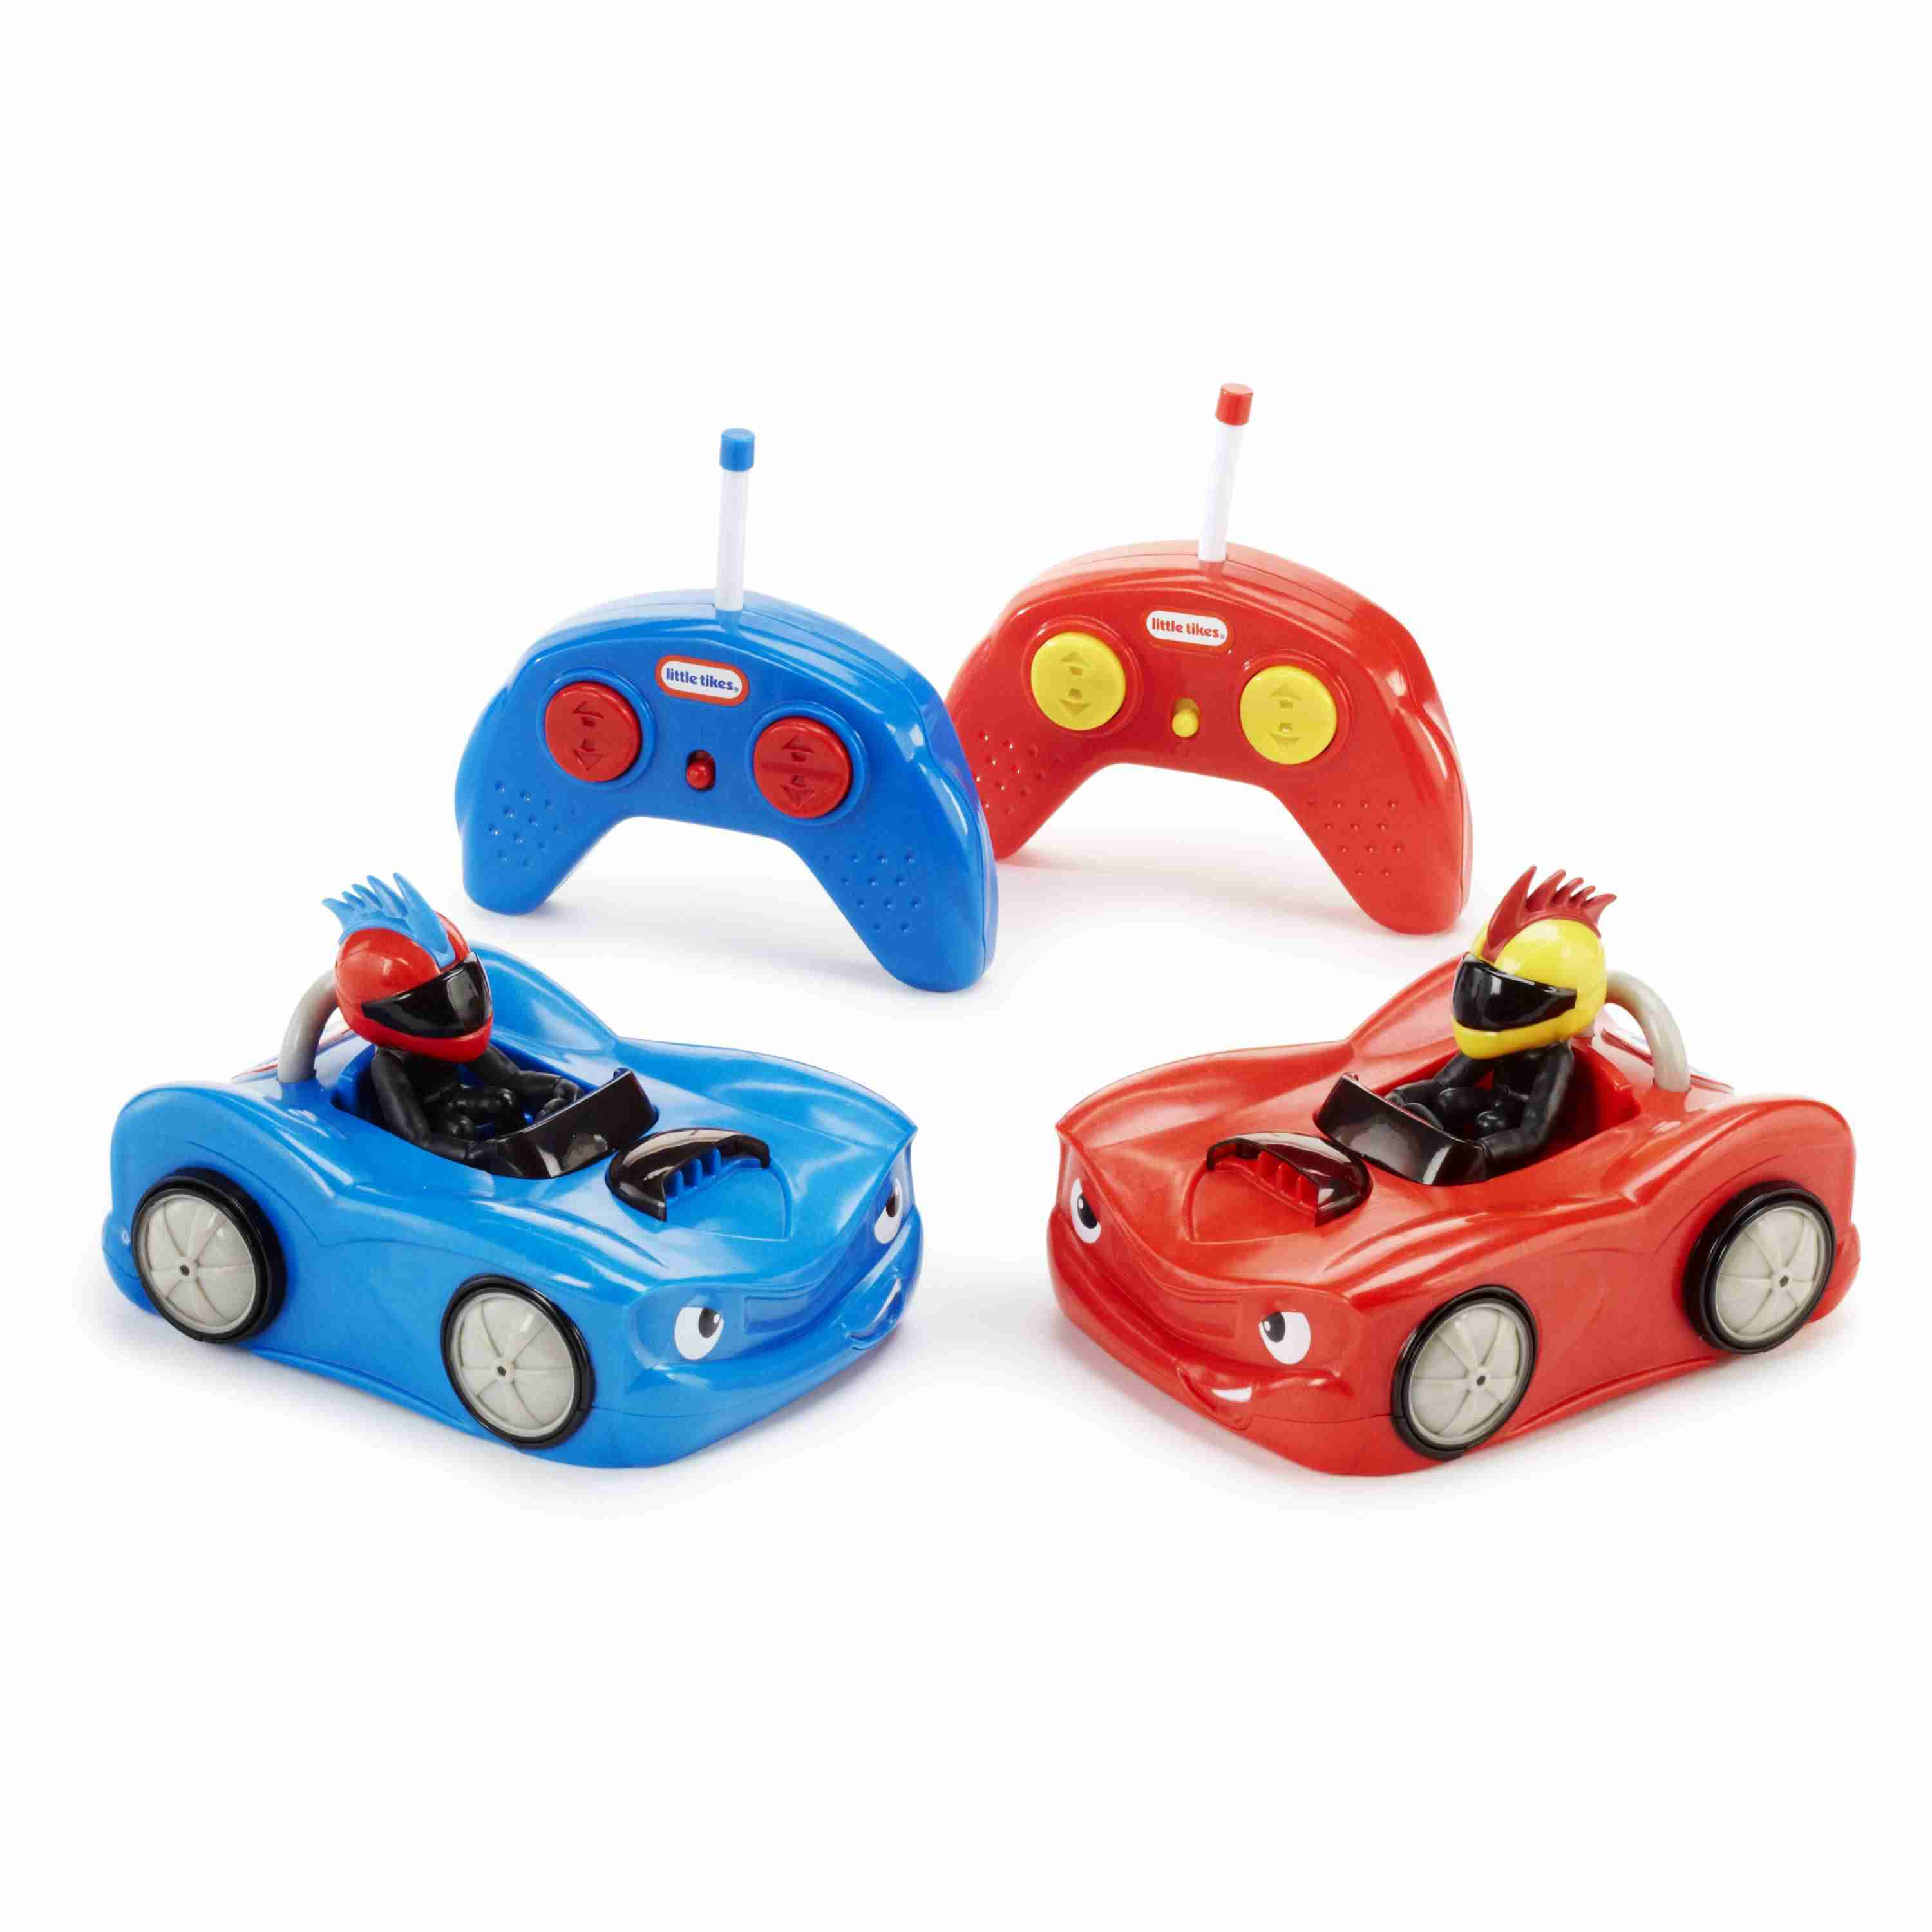 The 8 best toy cars for kids to buy in 2018 for Little tikes motorized vehicles